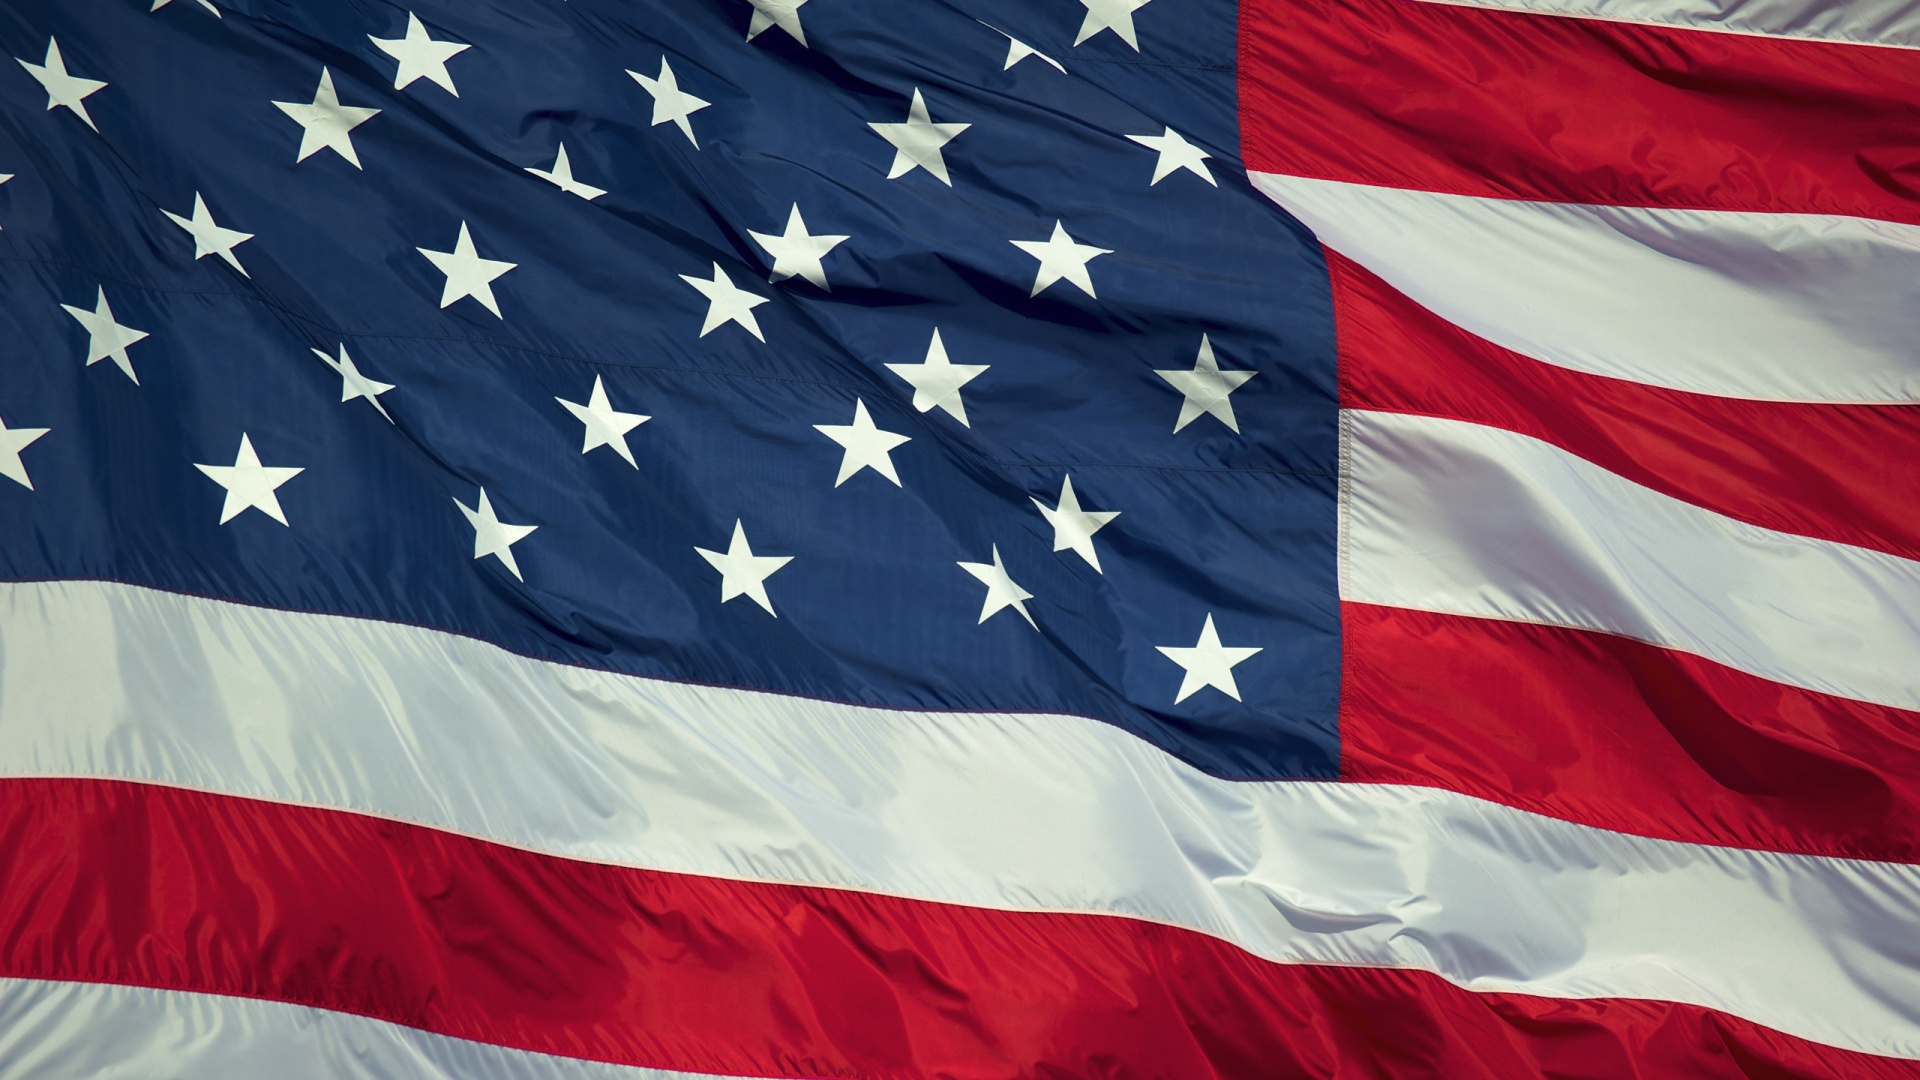 1920x1080 USA Flag desktop PC and Mac wallpaper 1920x1080